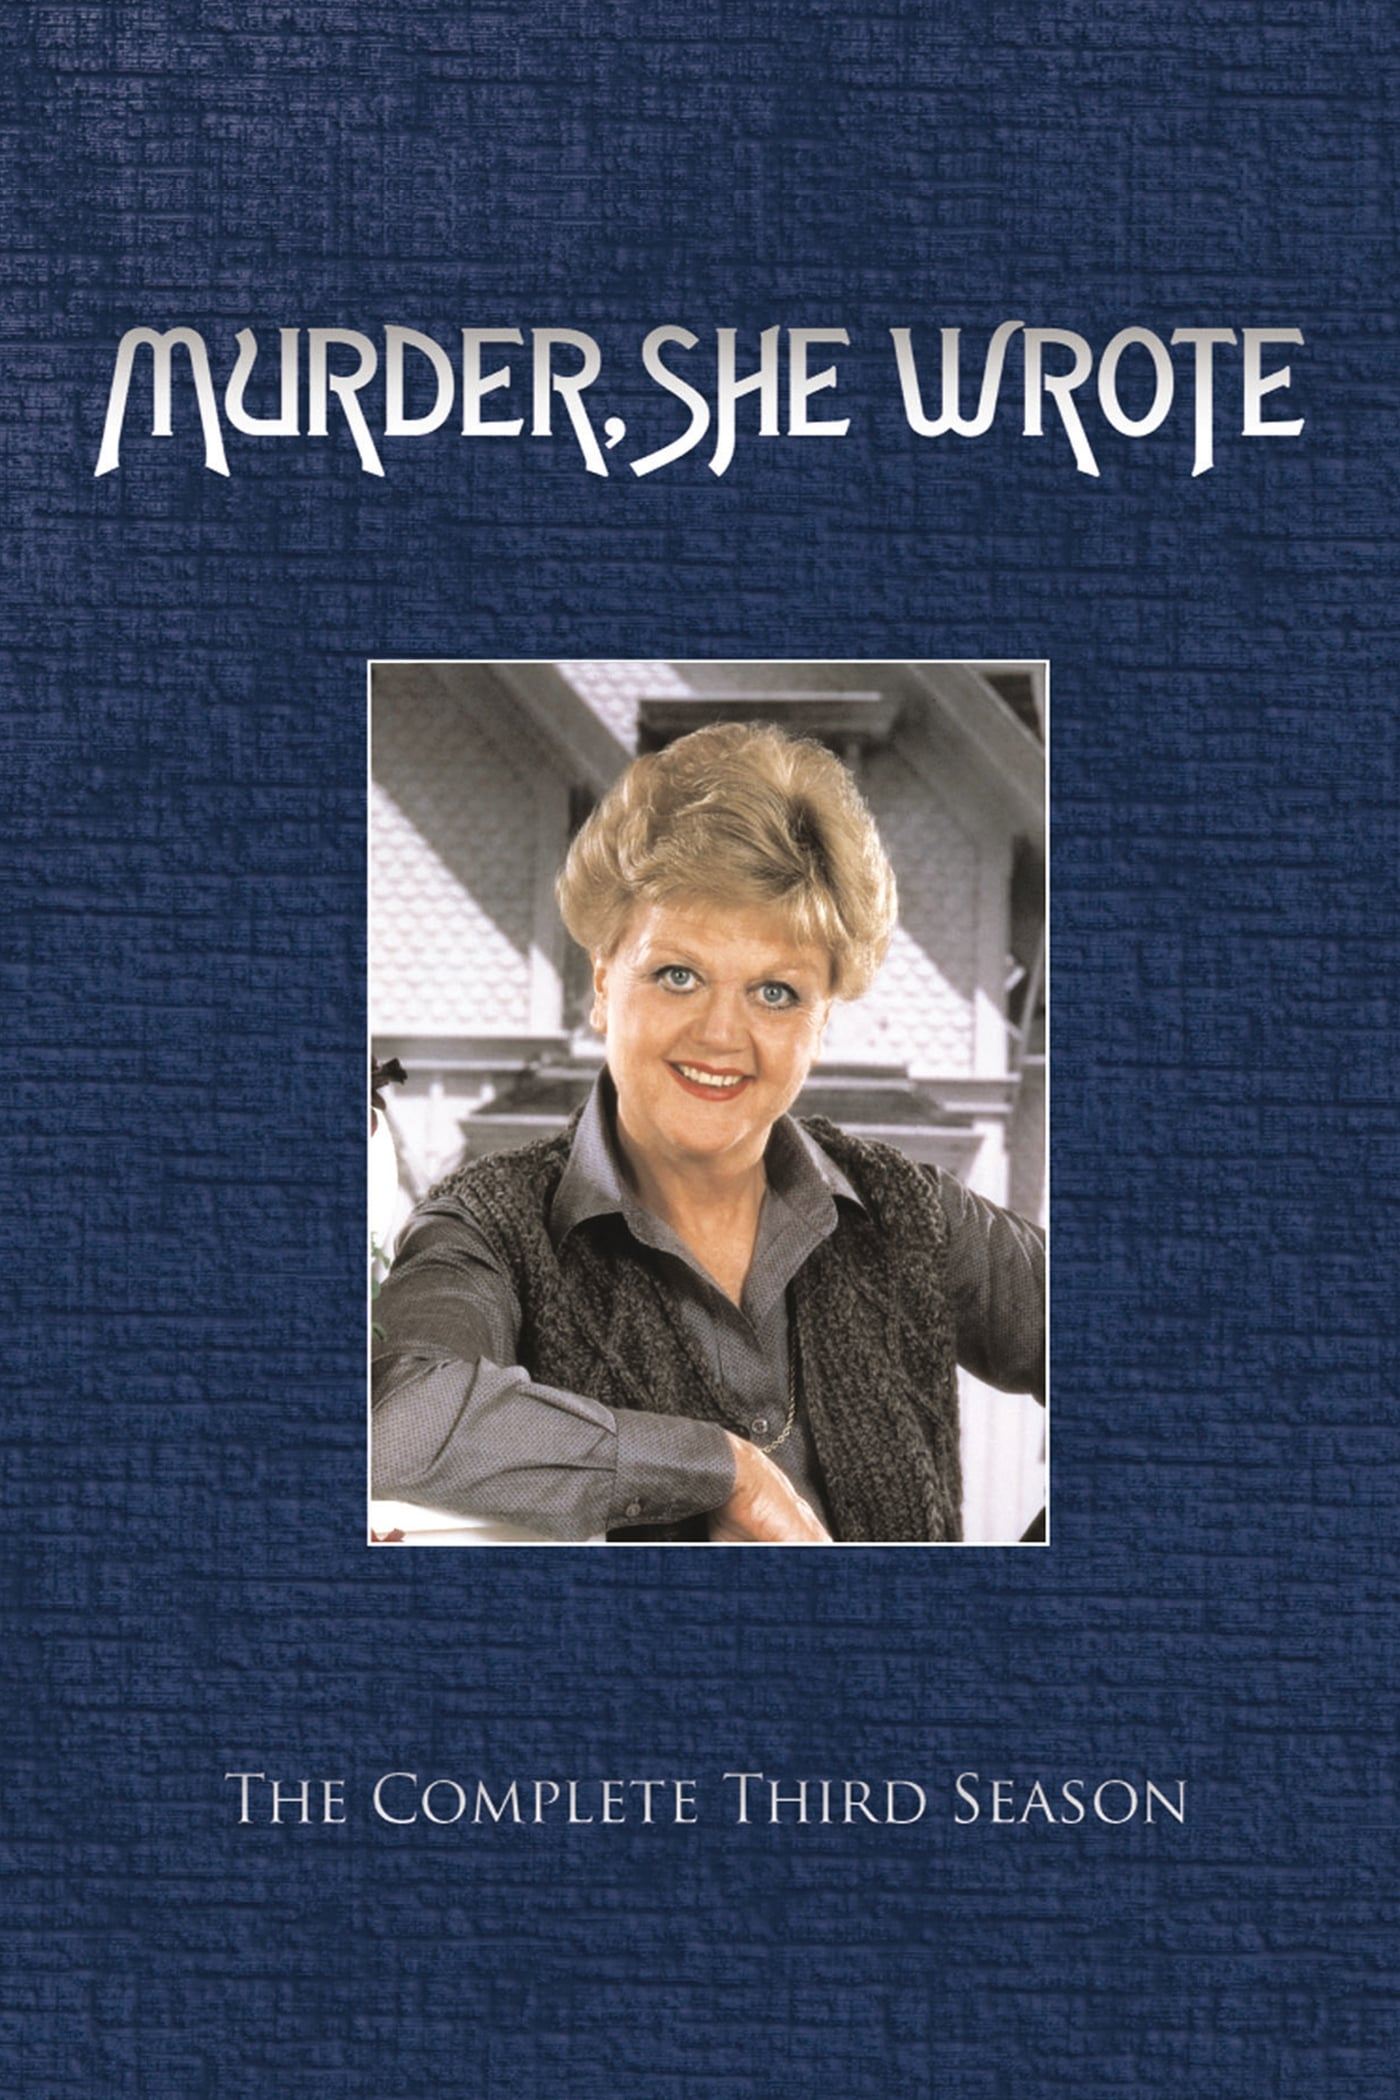 Murder, She Wrote Season 3